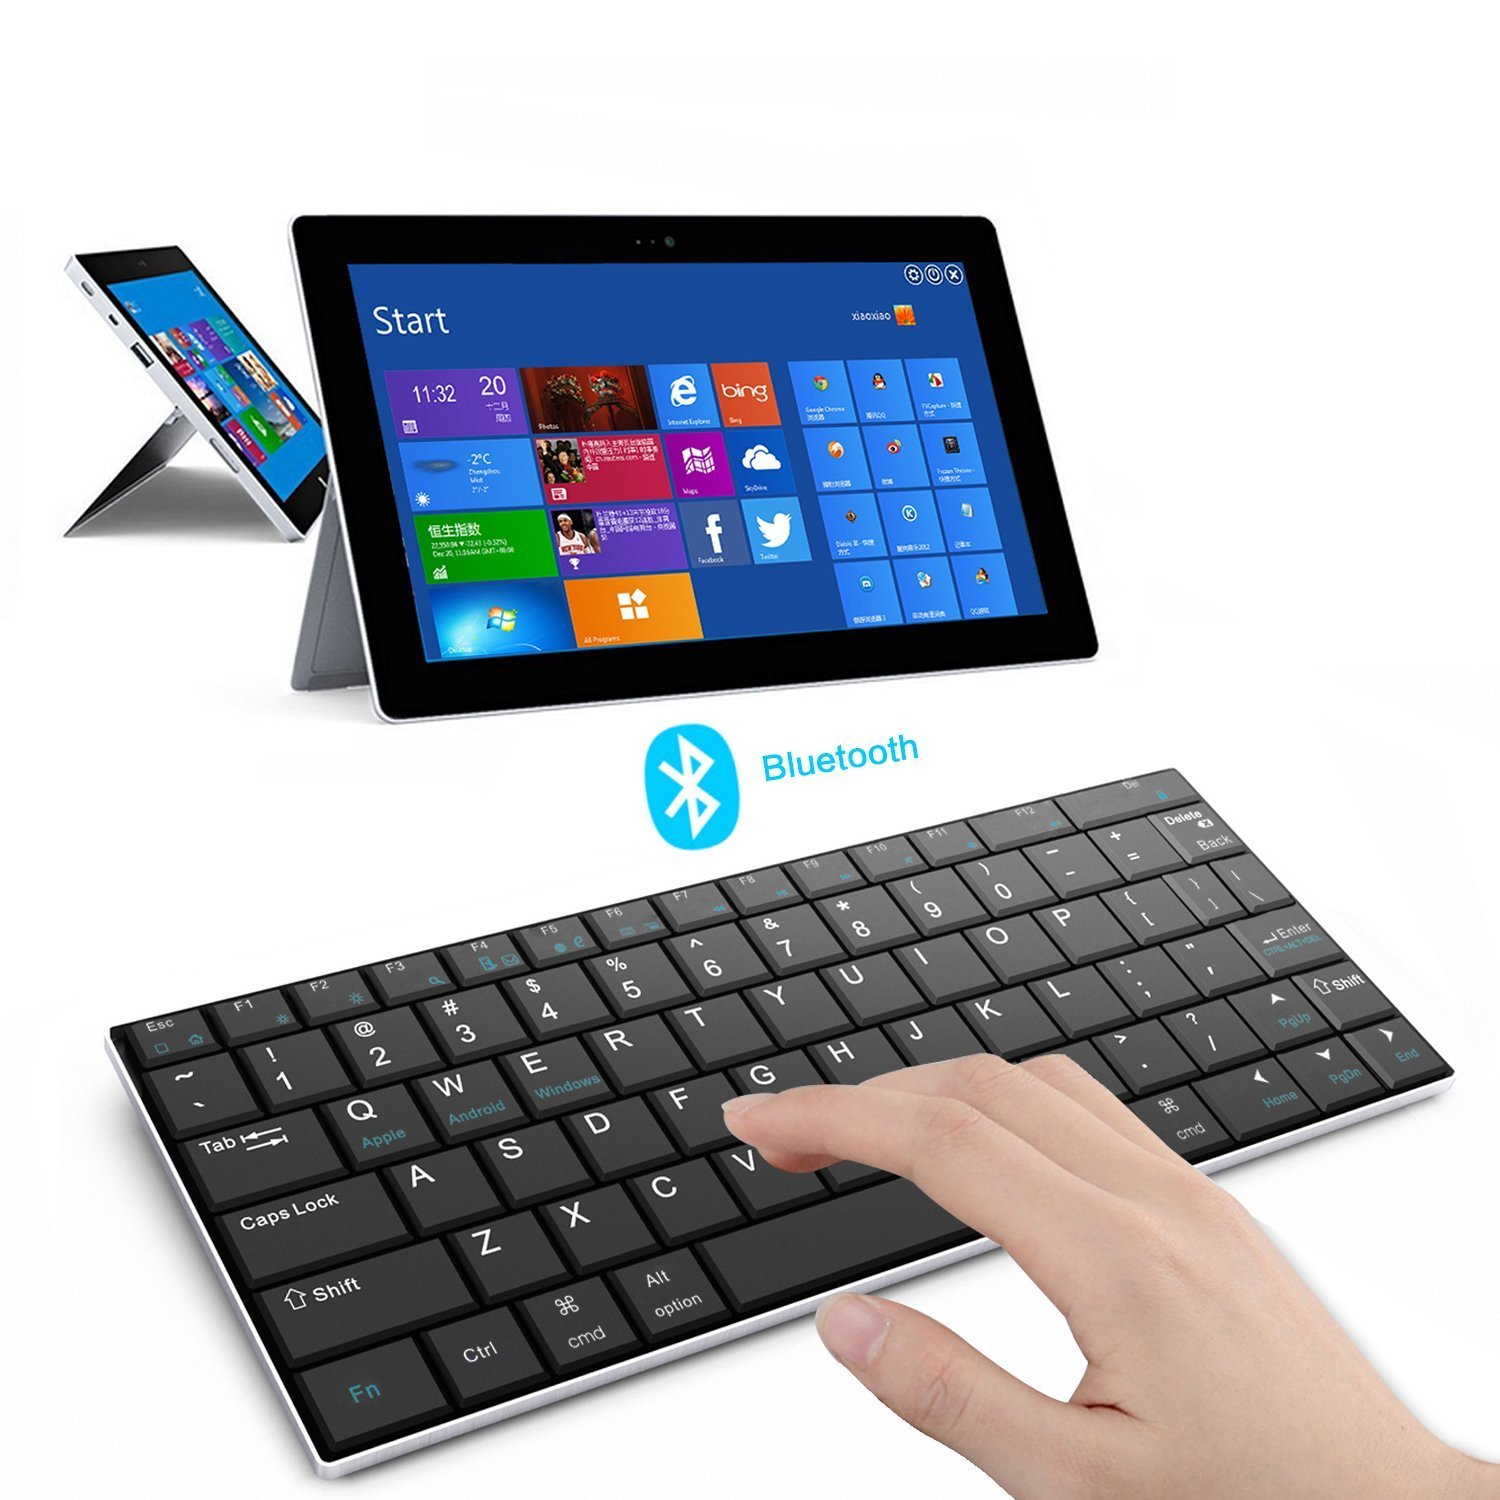 Rii i9 Bluetooth 3.0 Ultra Slim Wireless Rechargable Keyboard With Stainless Stand Cover For iOS/Android and Windows PC/Laptop/Notebook/MacBook/Samsung Galaxy Tablet/iPhone/iPad/Microsoft Surface by Rii (Image #3)